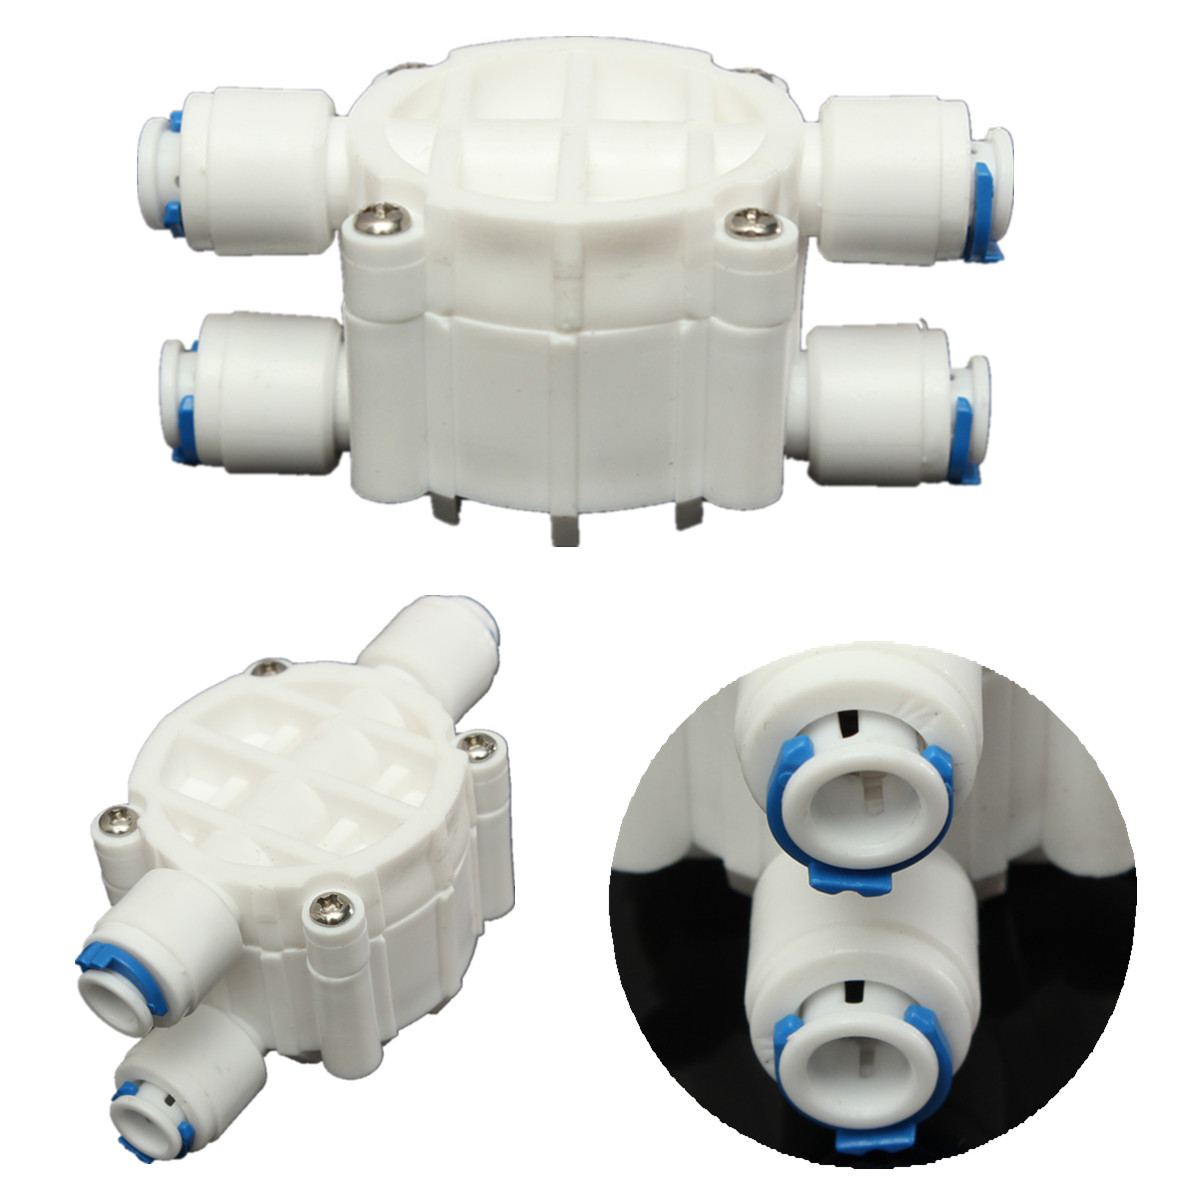 1 4 39 39 port 4 way auto shut off valve for ro reverse osmosis water filter system ebay. Black Bedroom Furniture Sets. Home Design Ideas